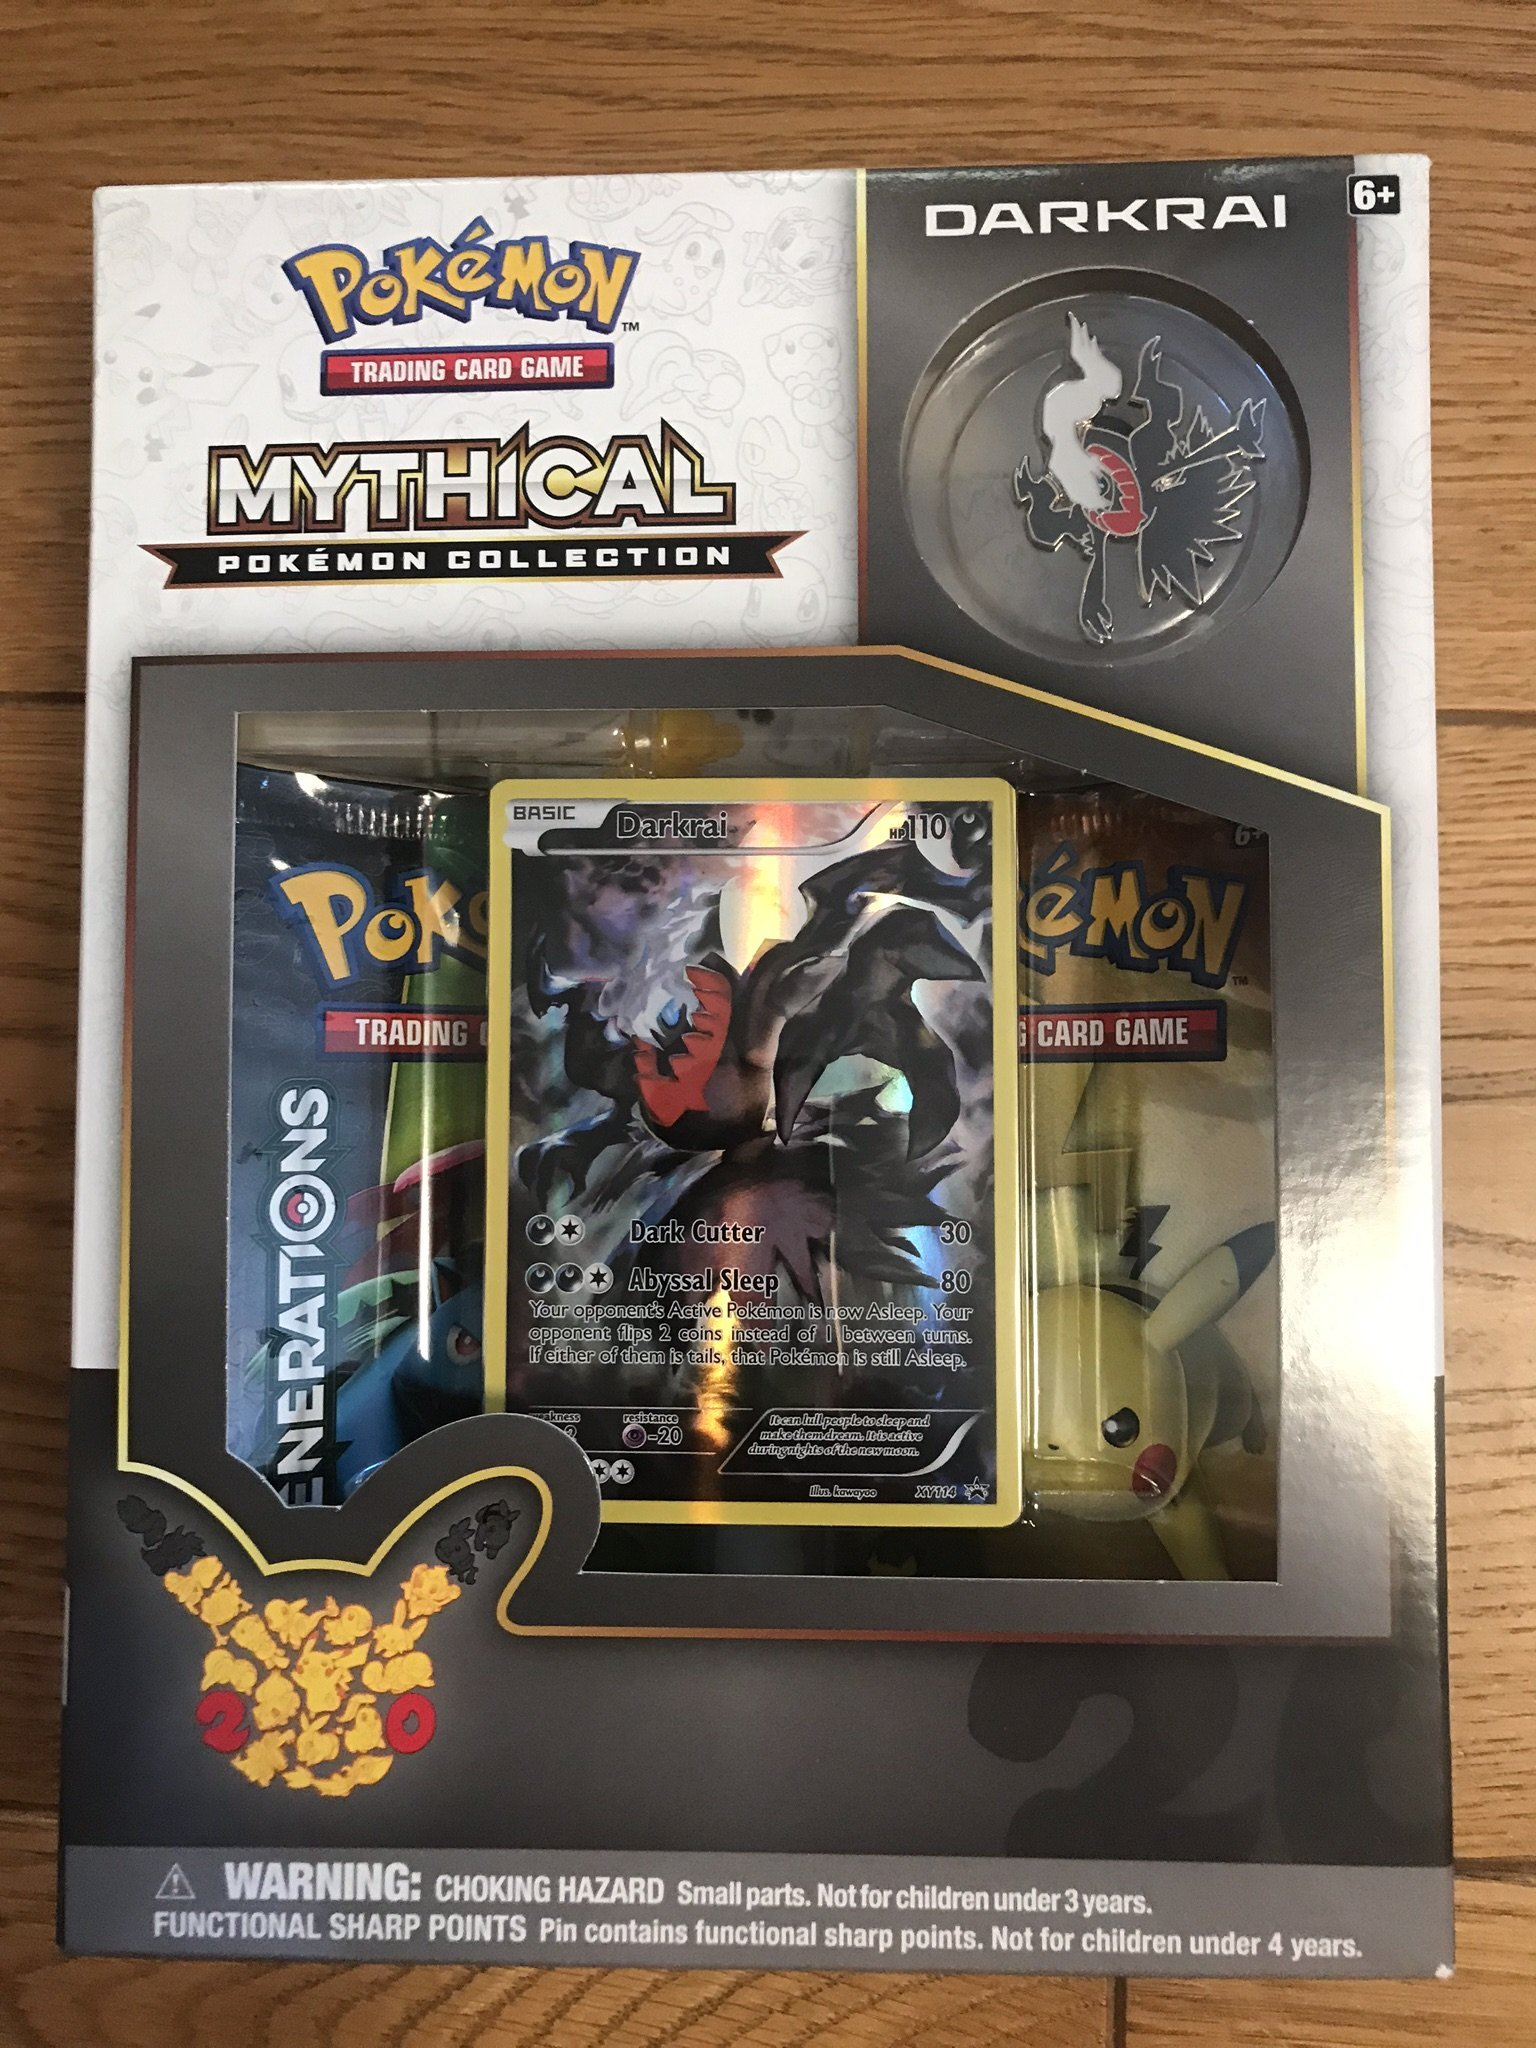 Pokémon - Mythical Pokemon Collection DARKRAI - Trading Card Game